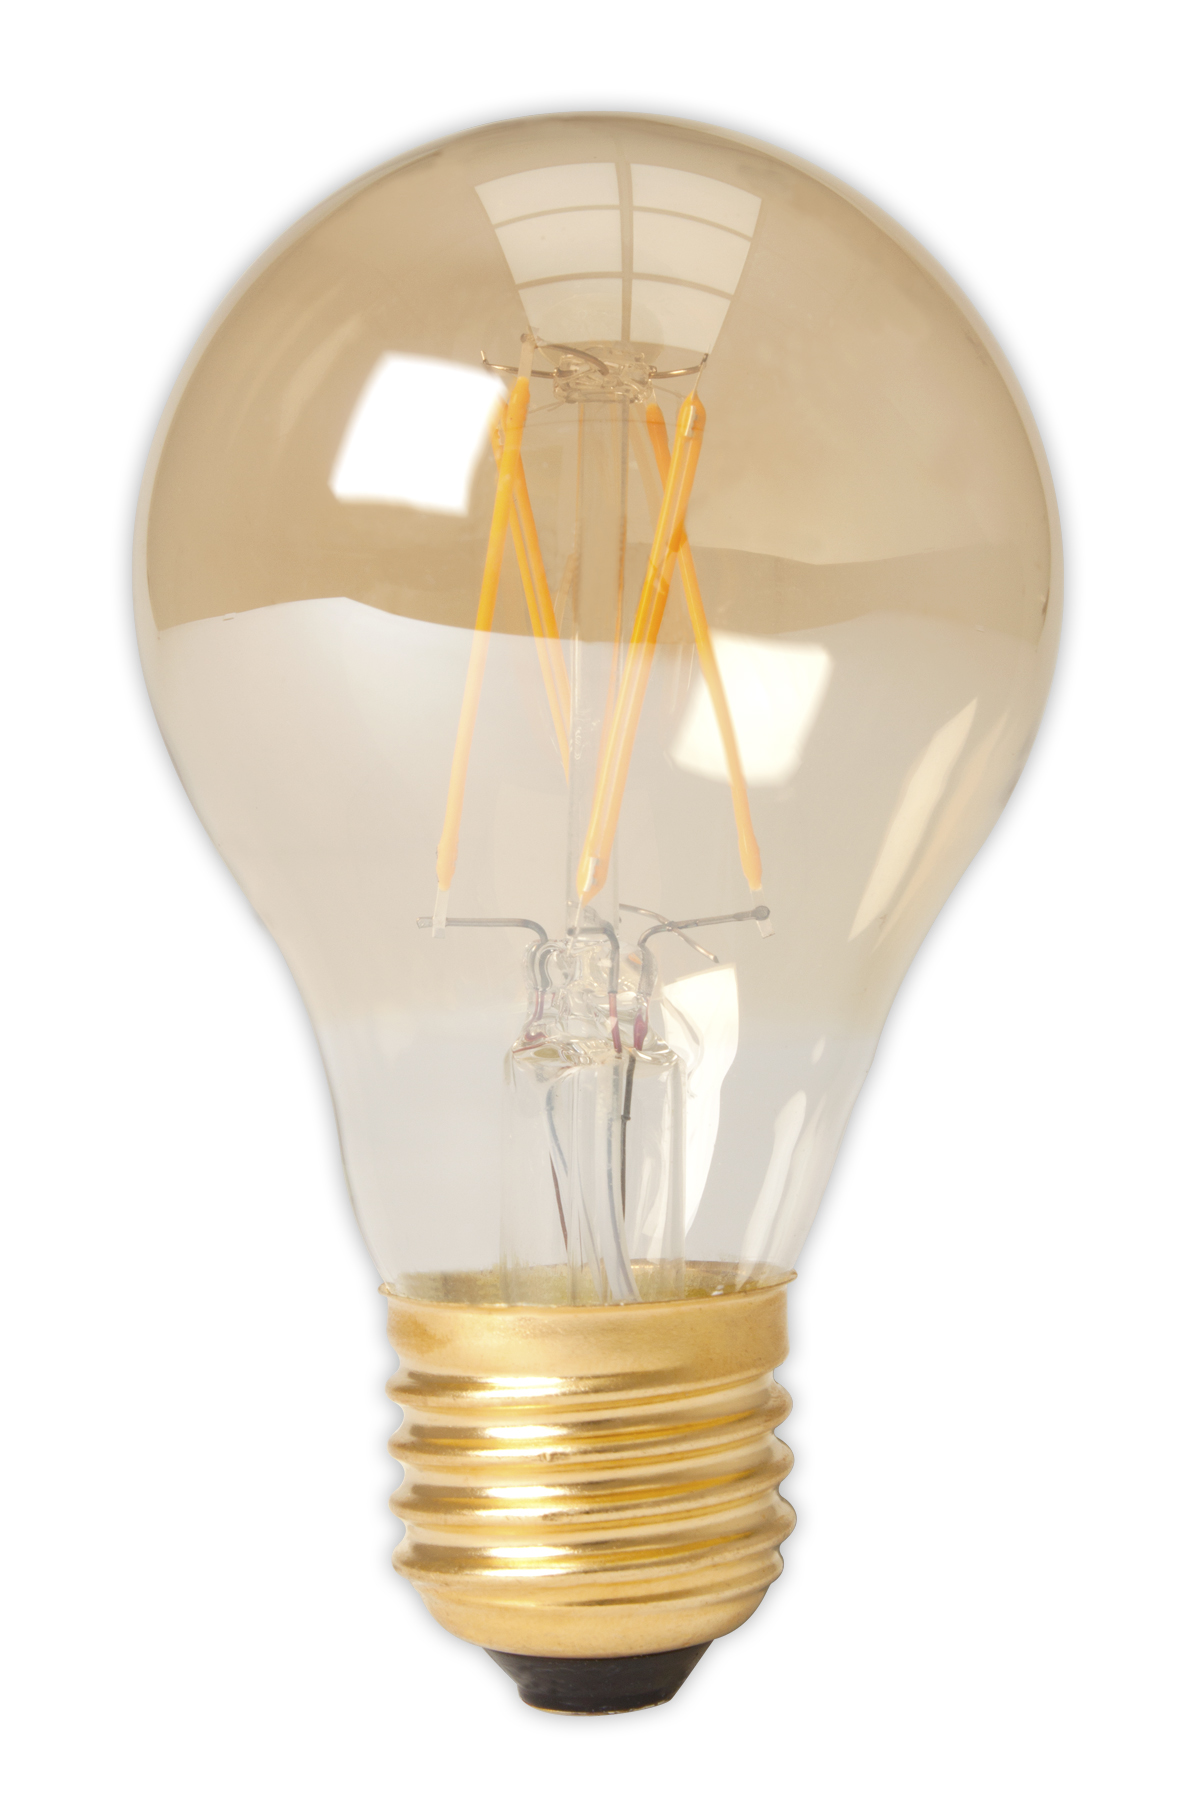 Calex standaardlamp LED filament 4W (vervangt 40W) grote fitting E27 goud